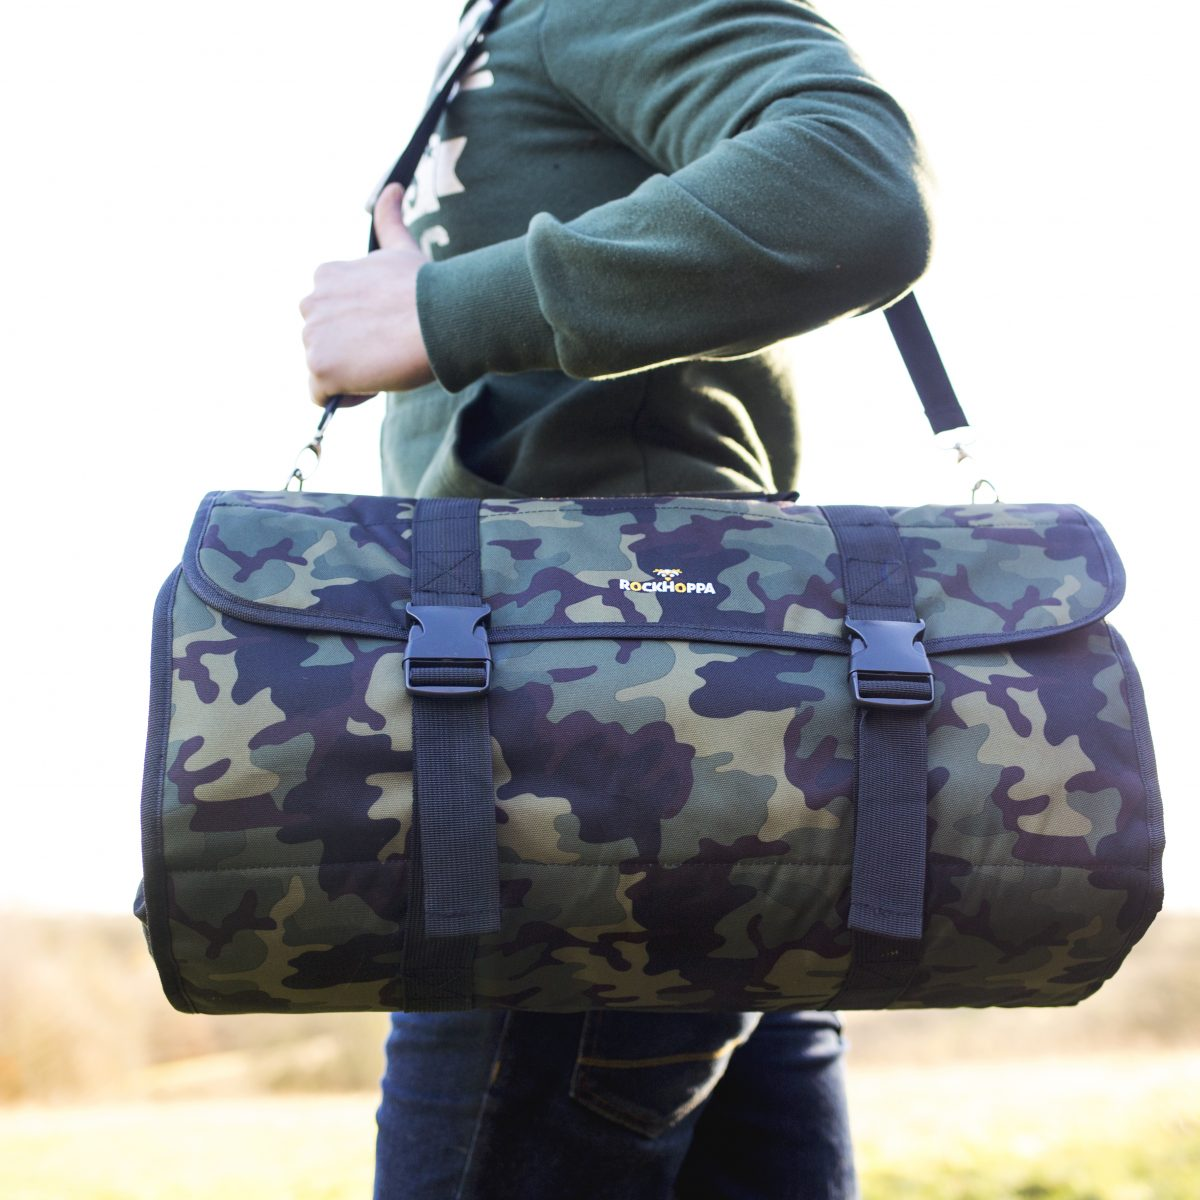 Men's weekend travel bag is great for guys